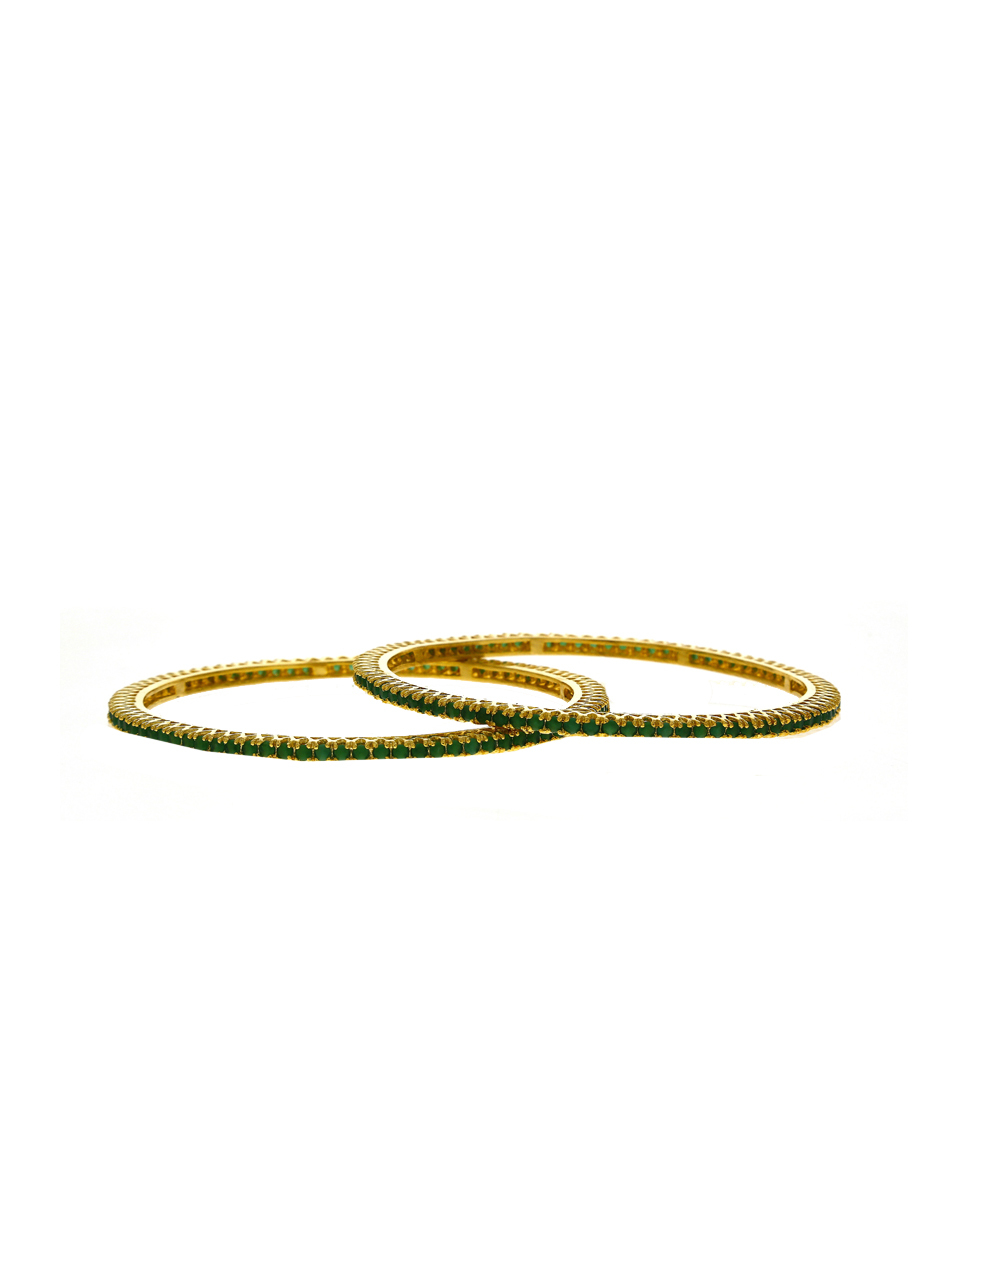 Dazzling Green Stones Studded With Golden Matt Finishing Bangles.